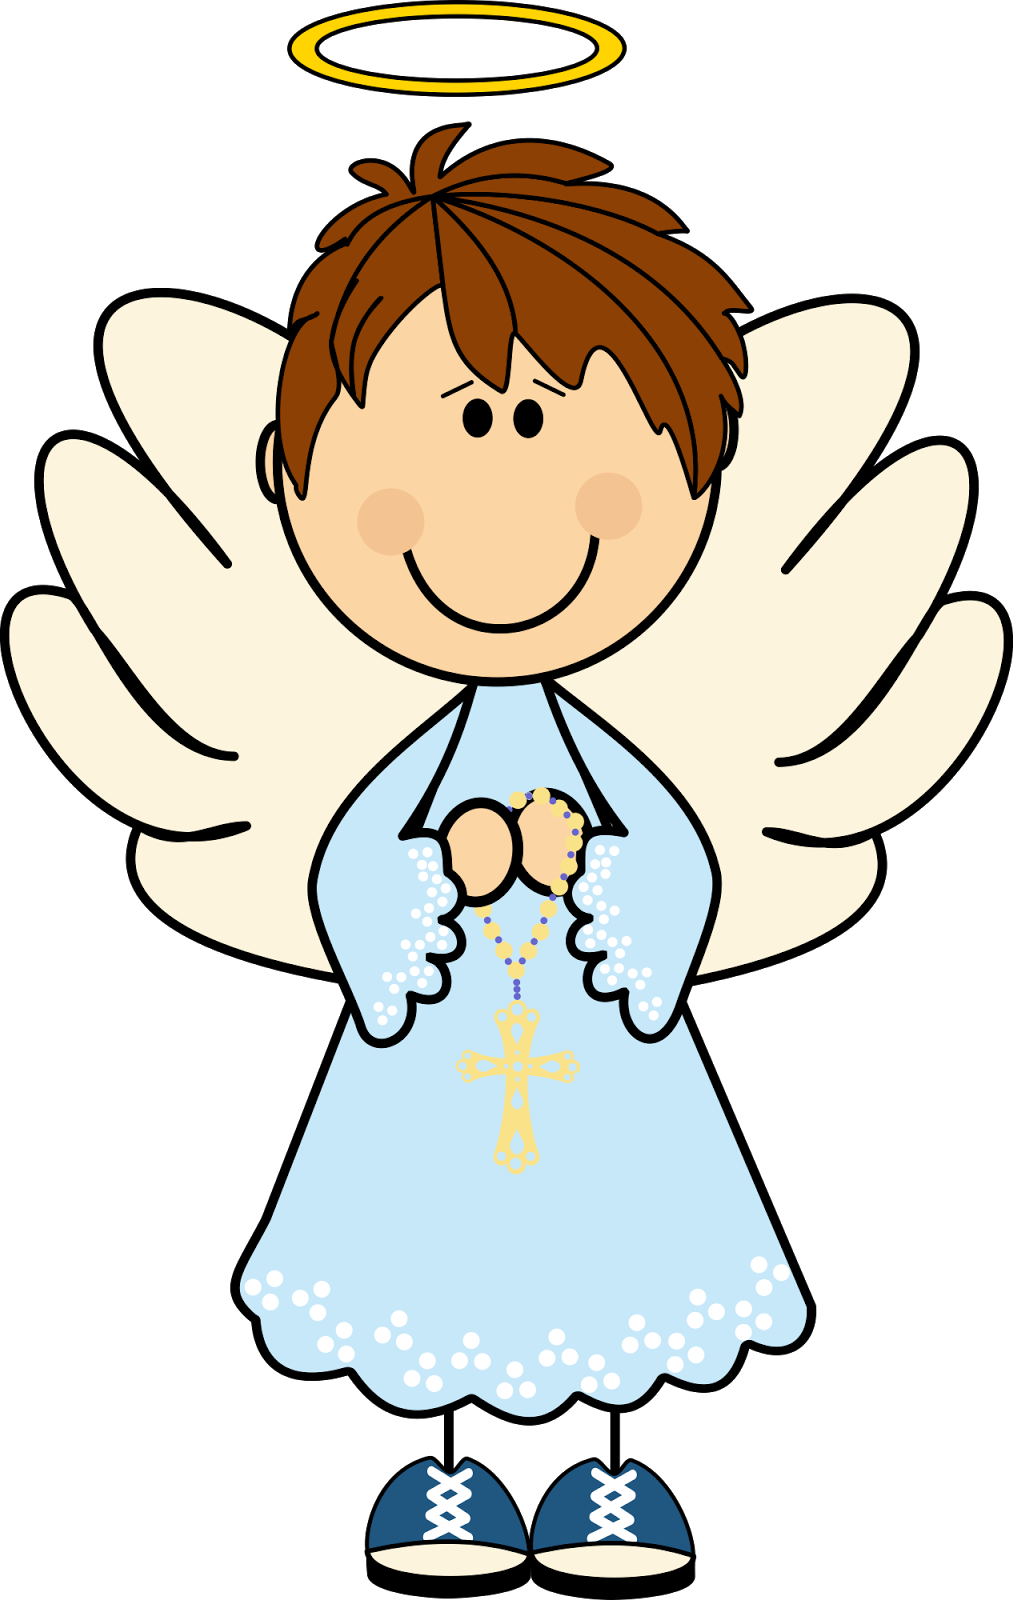 angel clipart free - 820×860